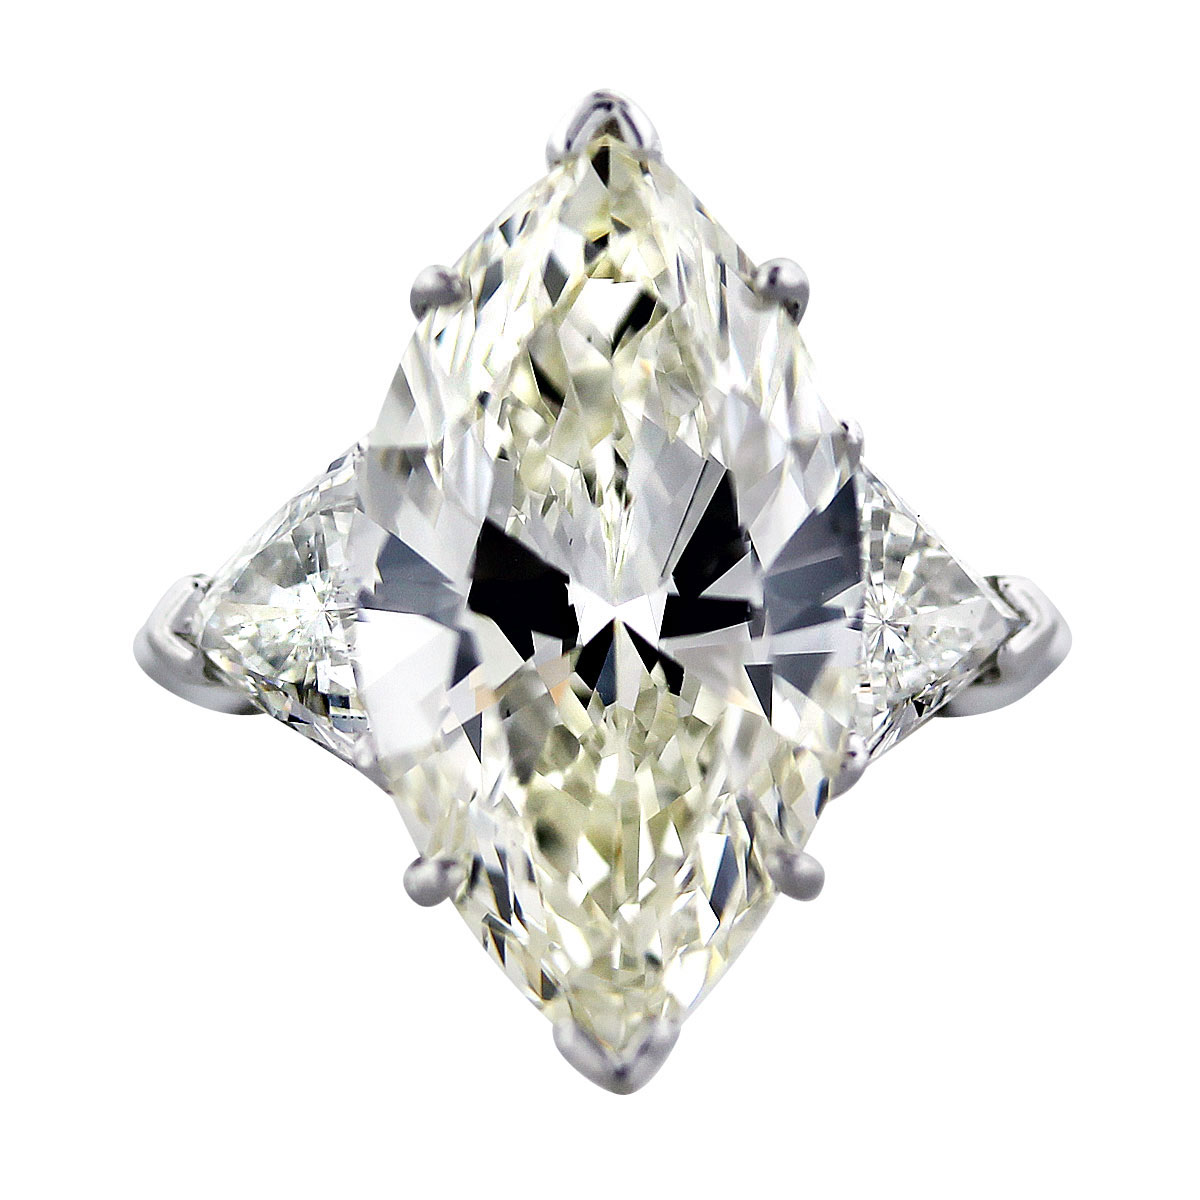 10 ct marquise cut